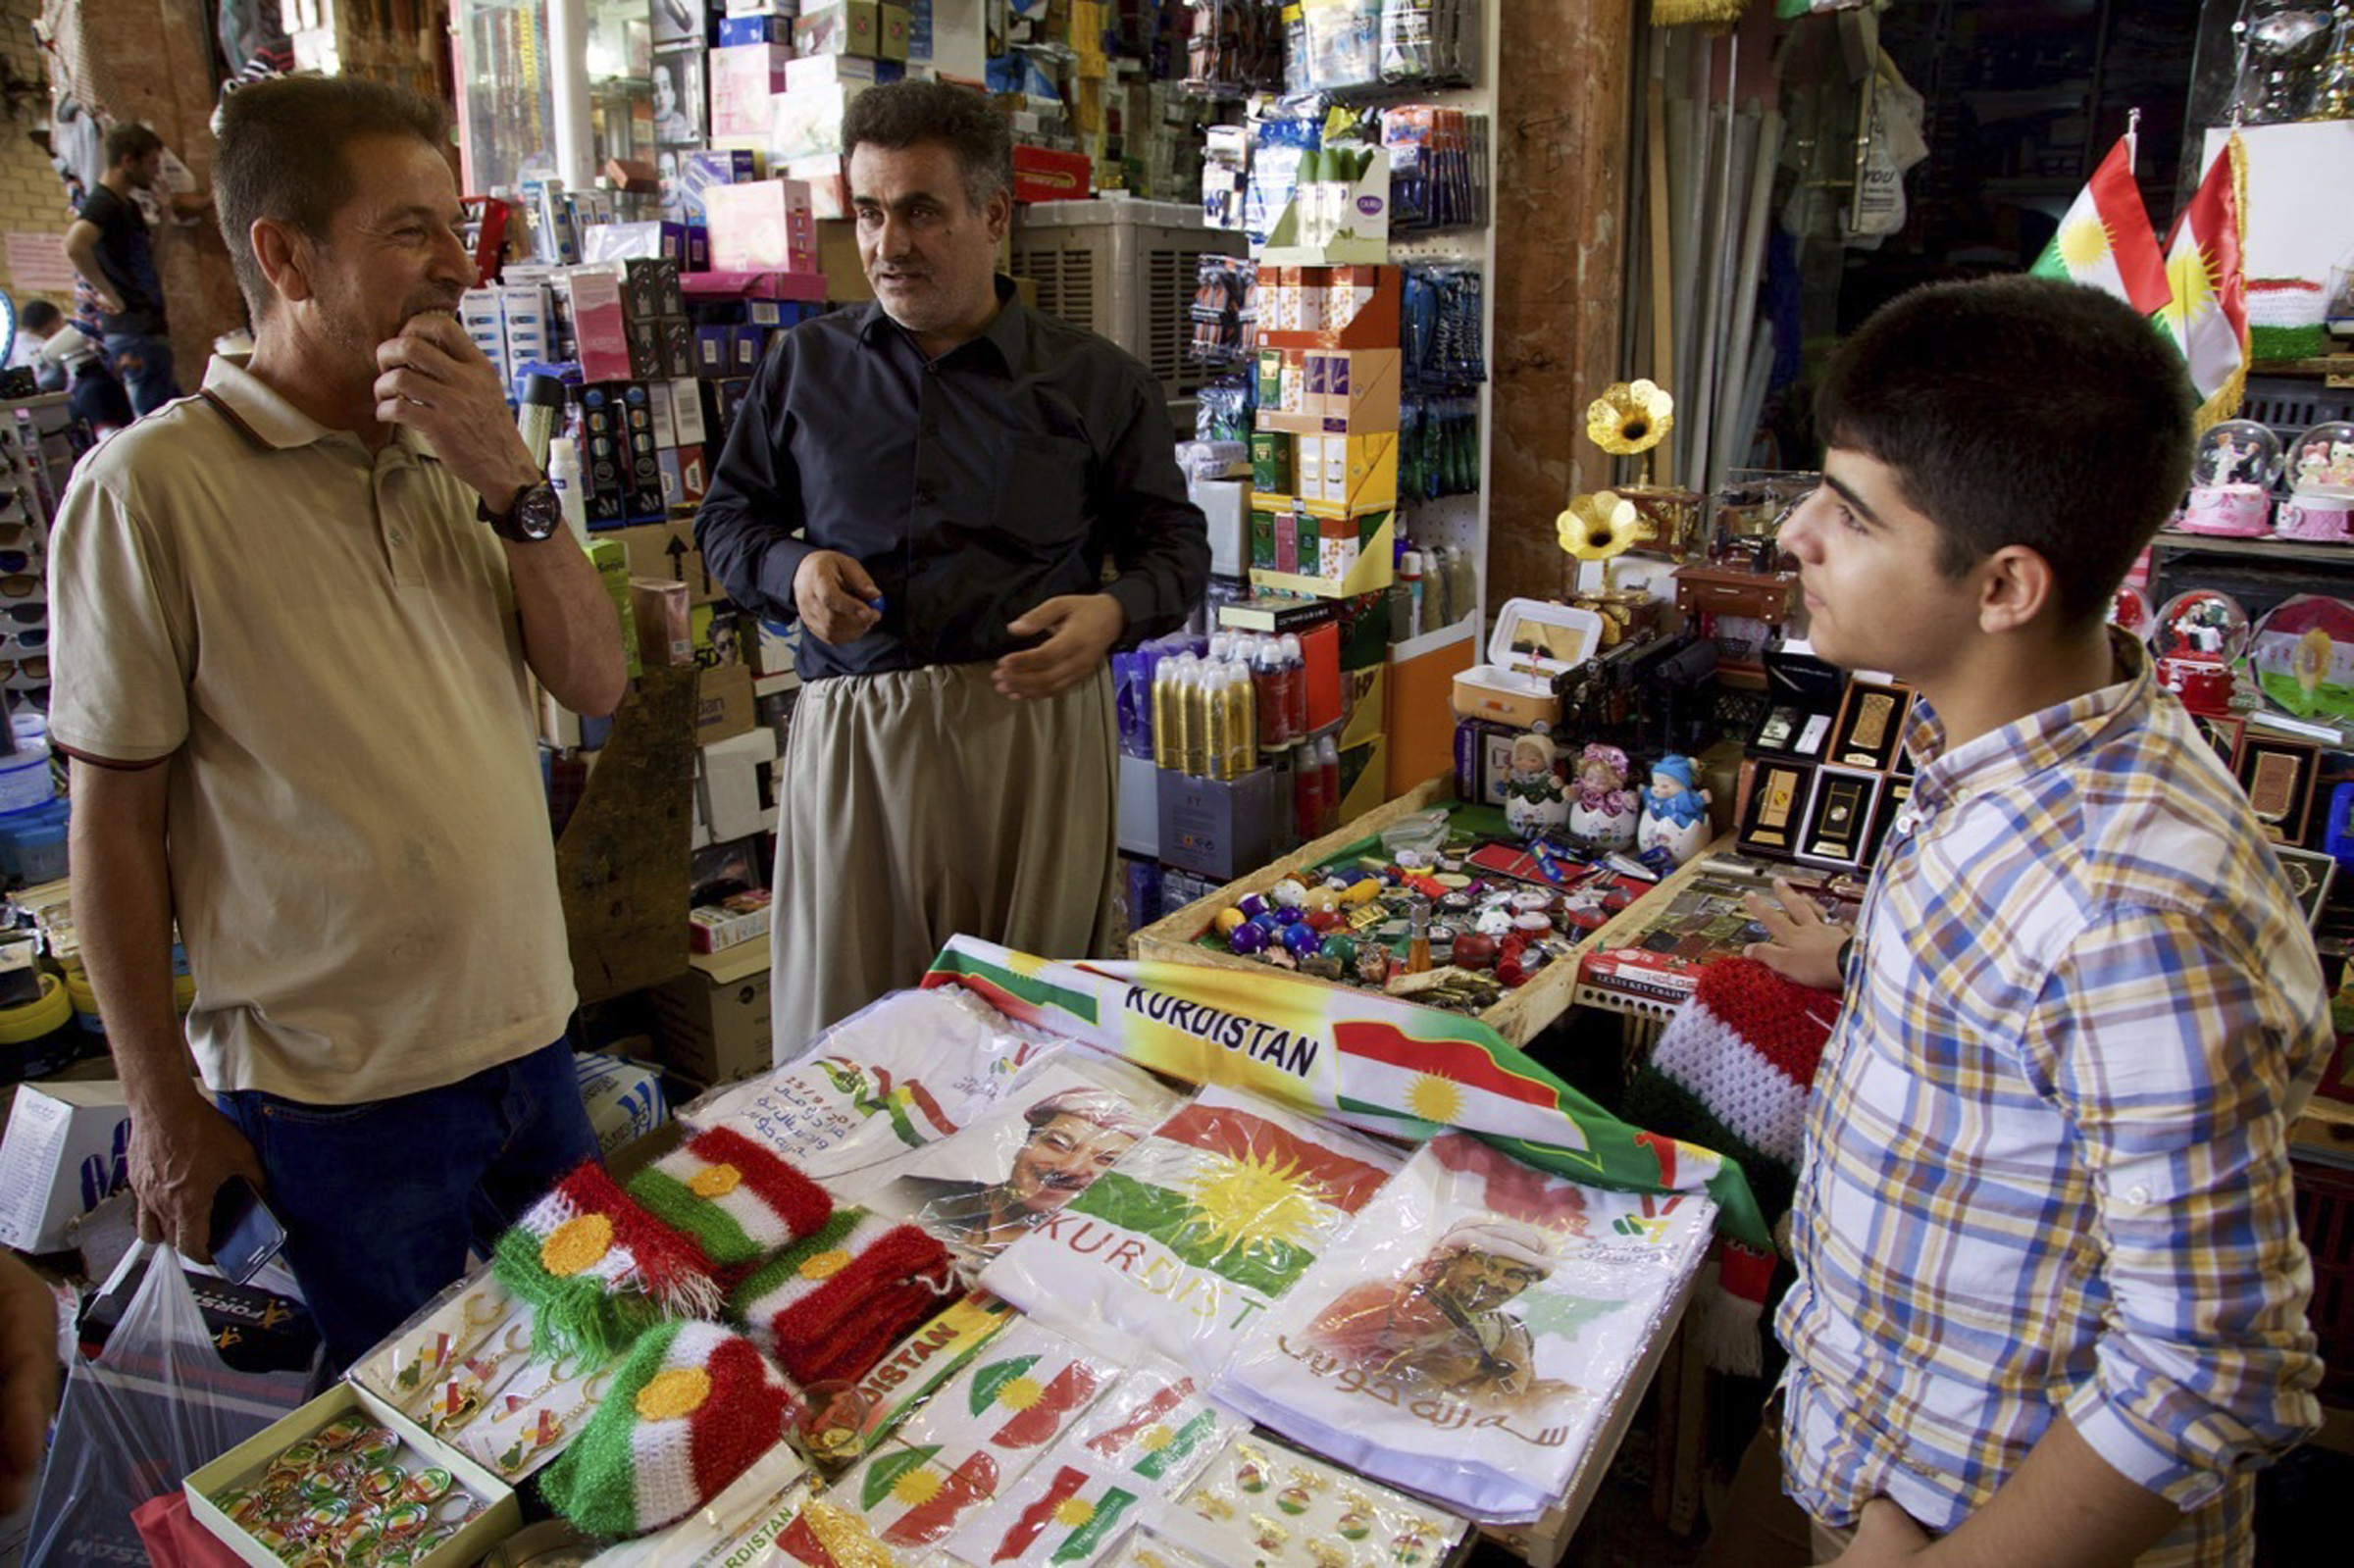 FILE - A salesman, talking to a customer, sells patriotic and pro-independence paraphanelia at a bazaar in Irbil, Iraq, Aug. 24, 2017.